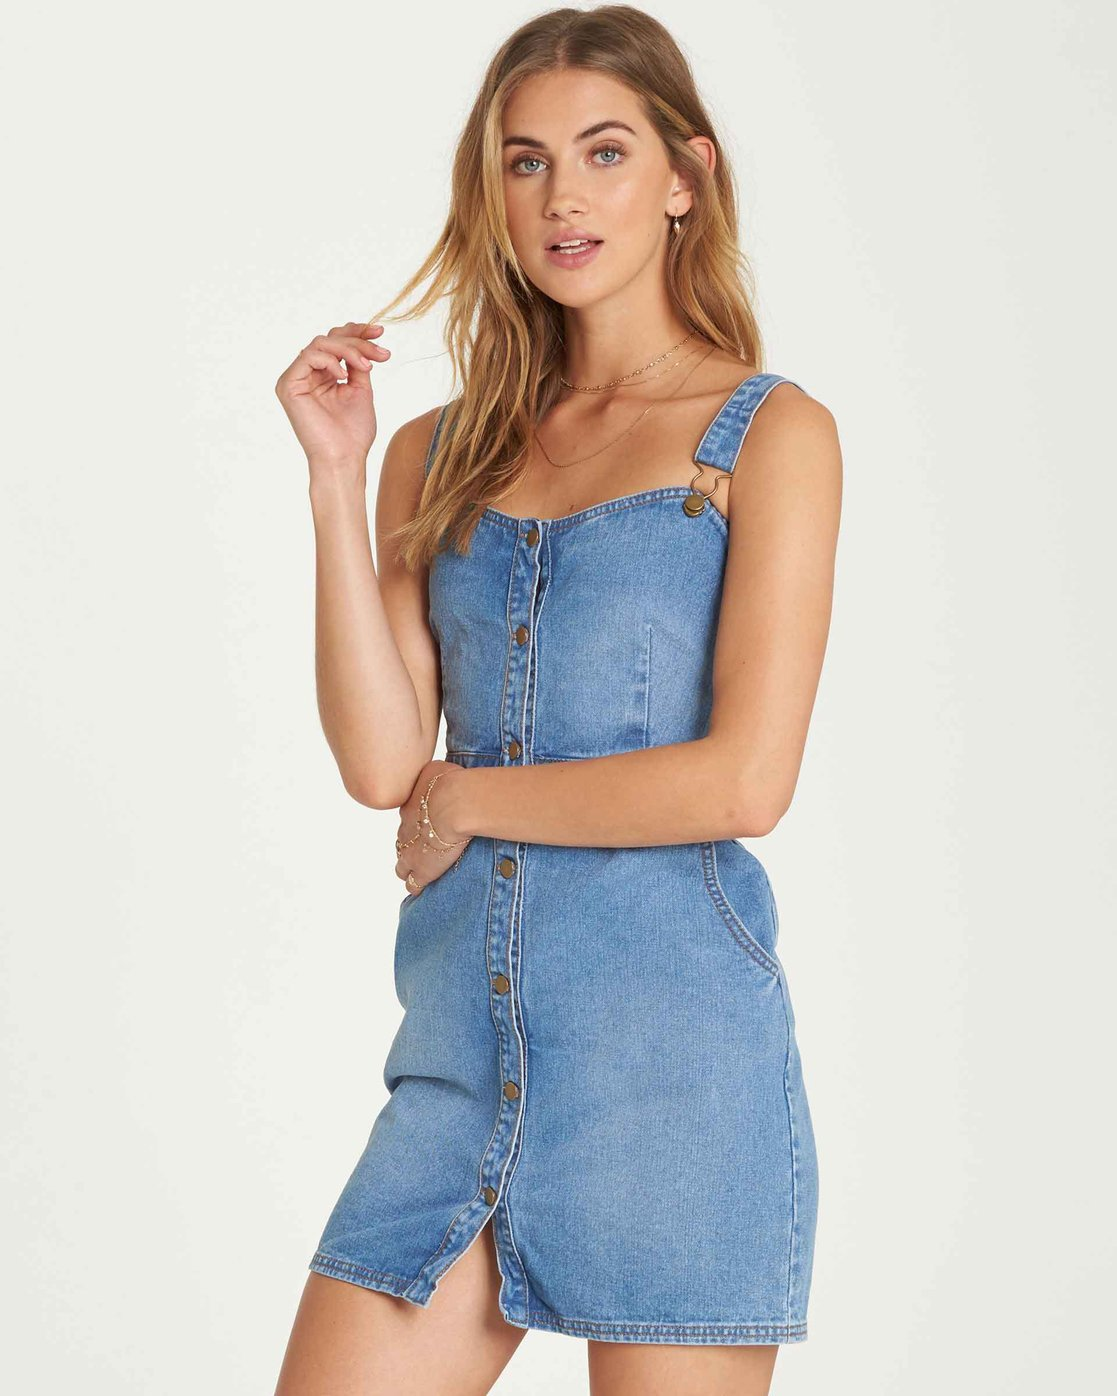 64e3b93096 Coastline Dance Denim Dress JD04QBCO | Billabong